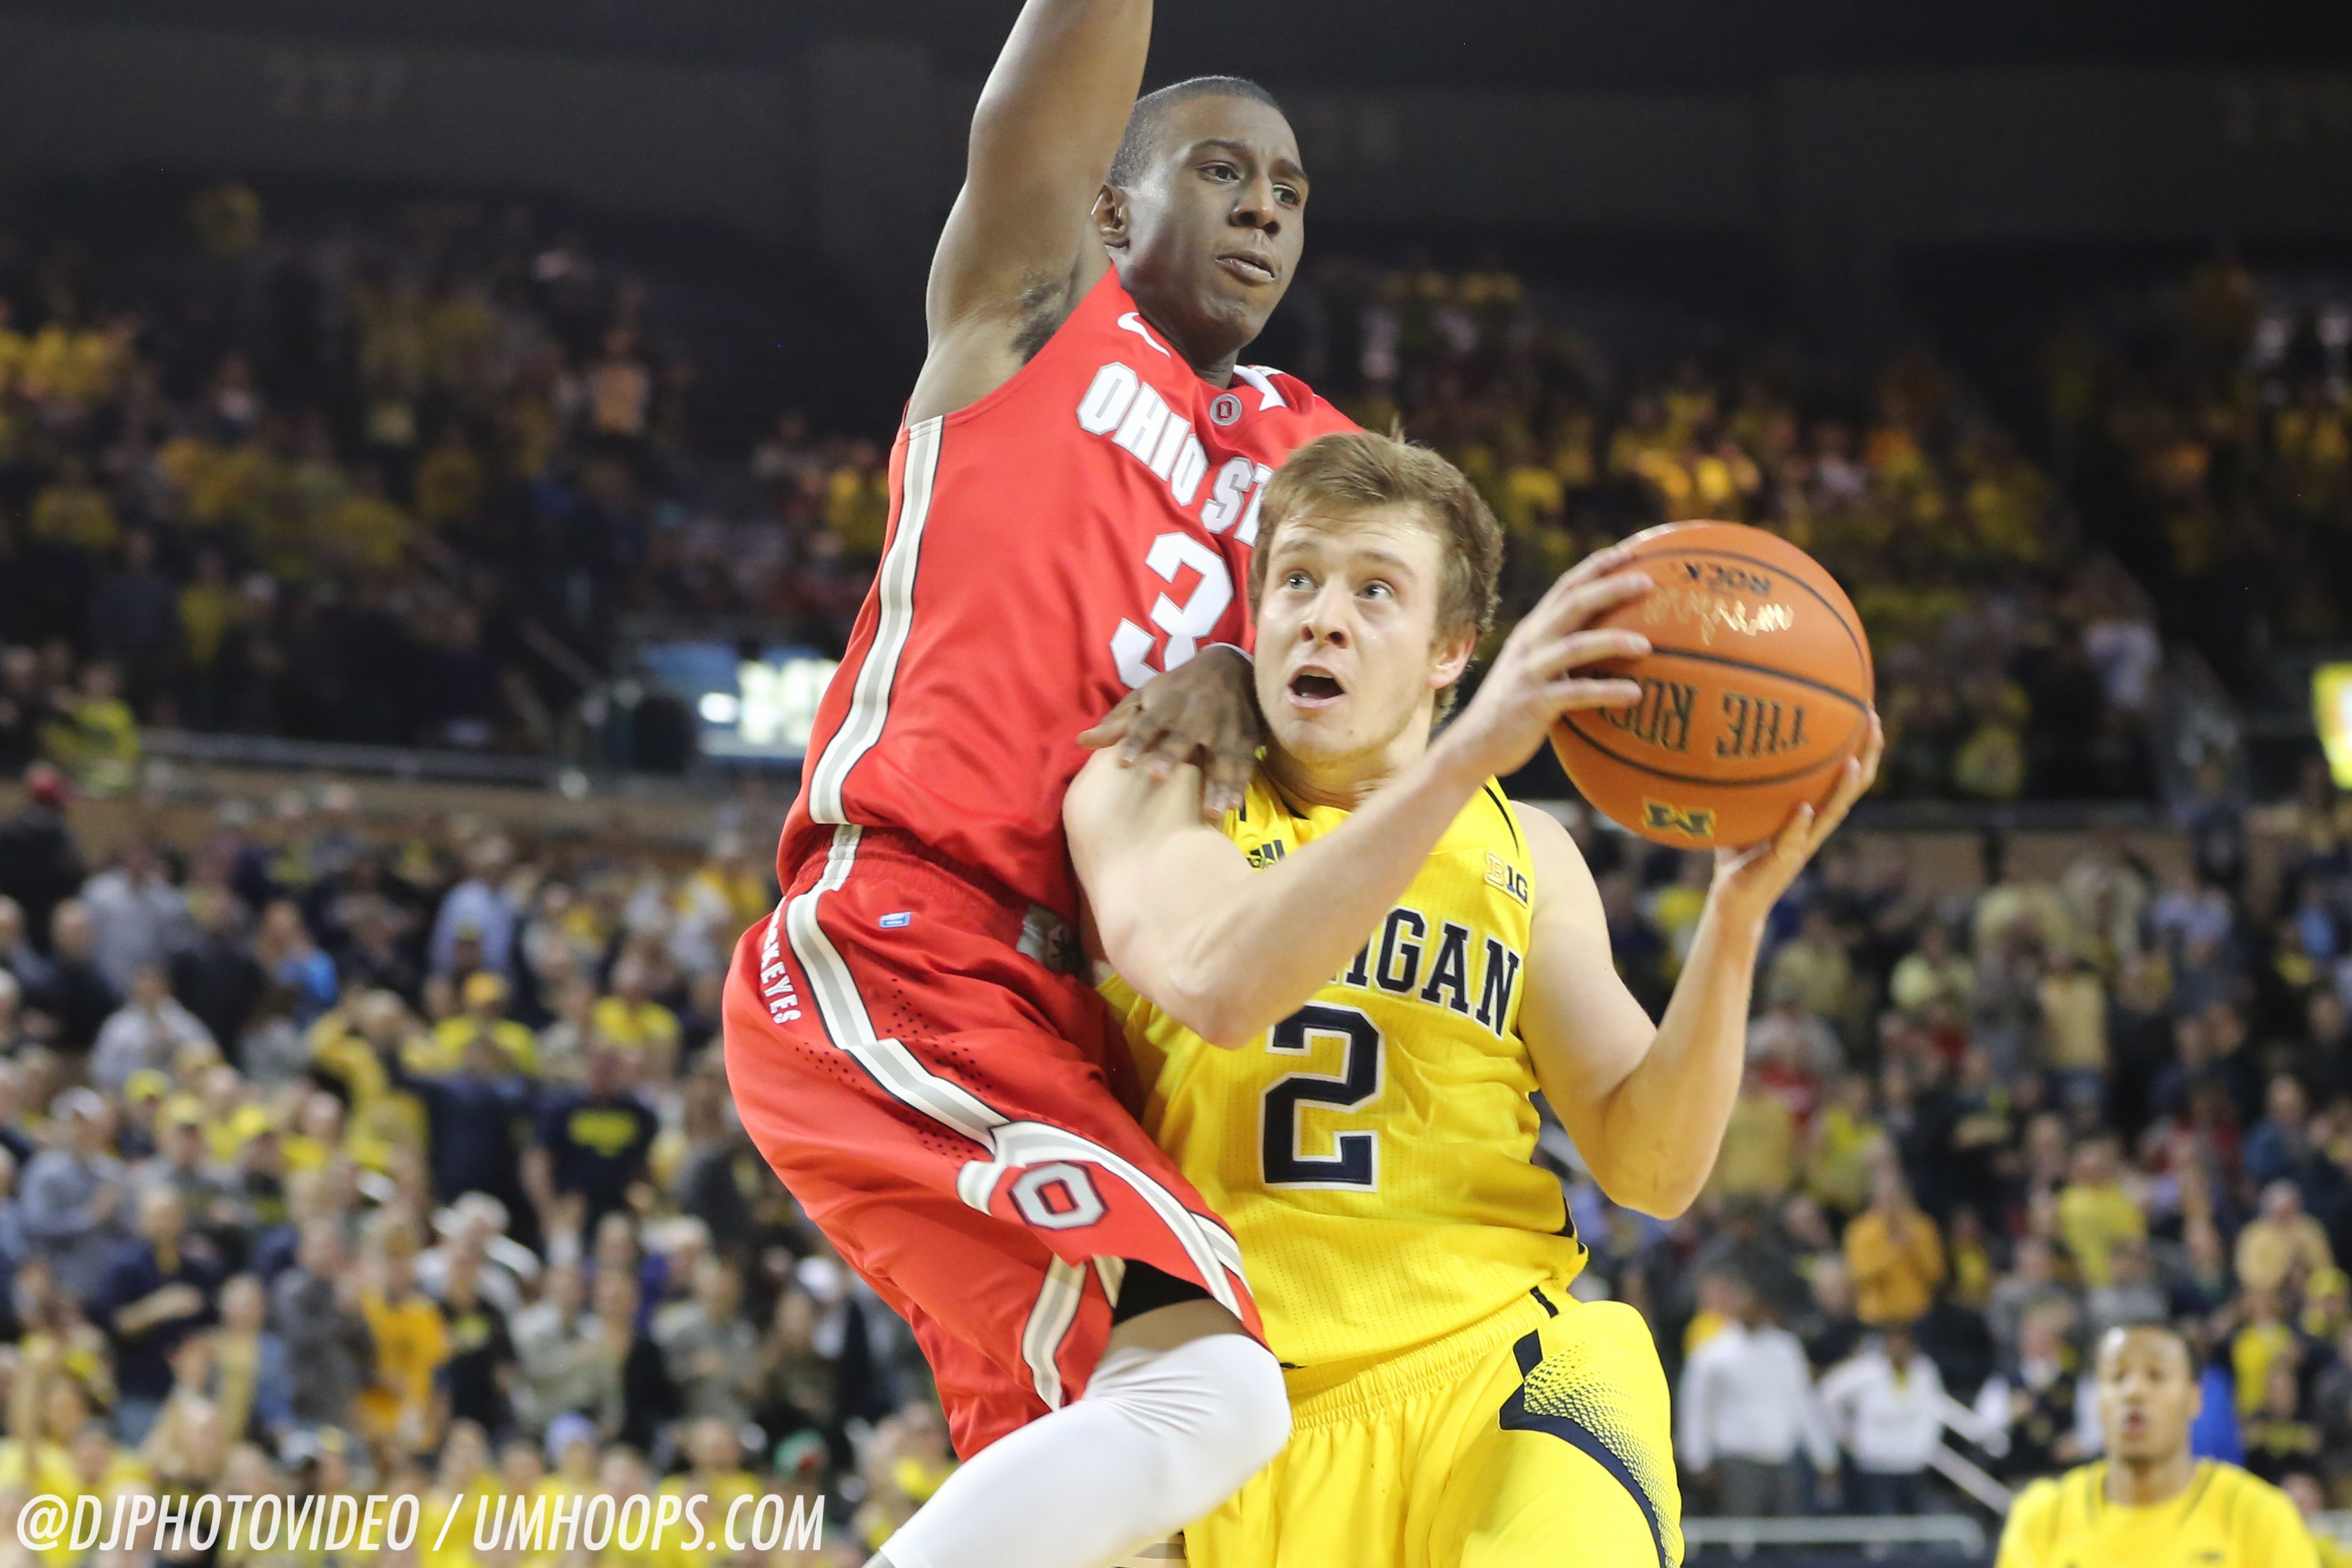 Michigan 64, Ohio State 57-27